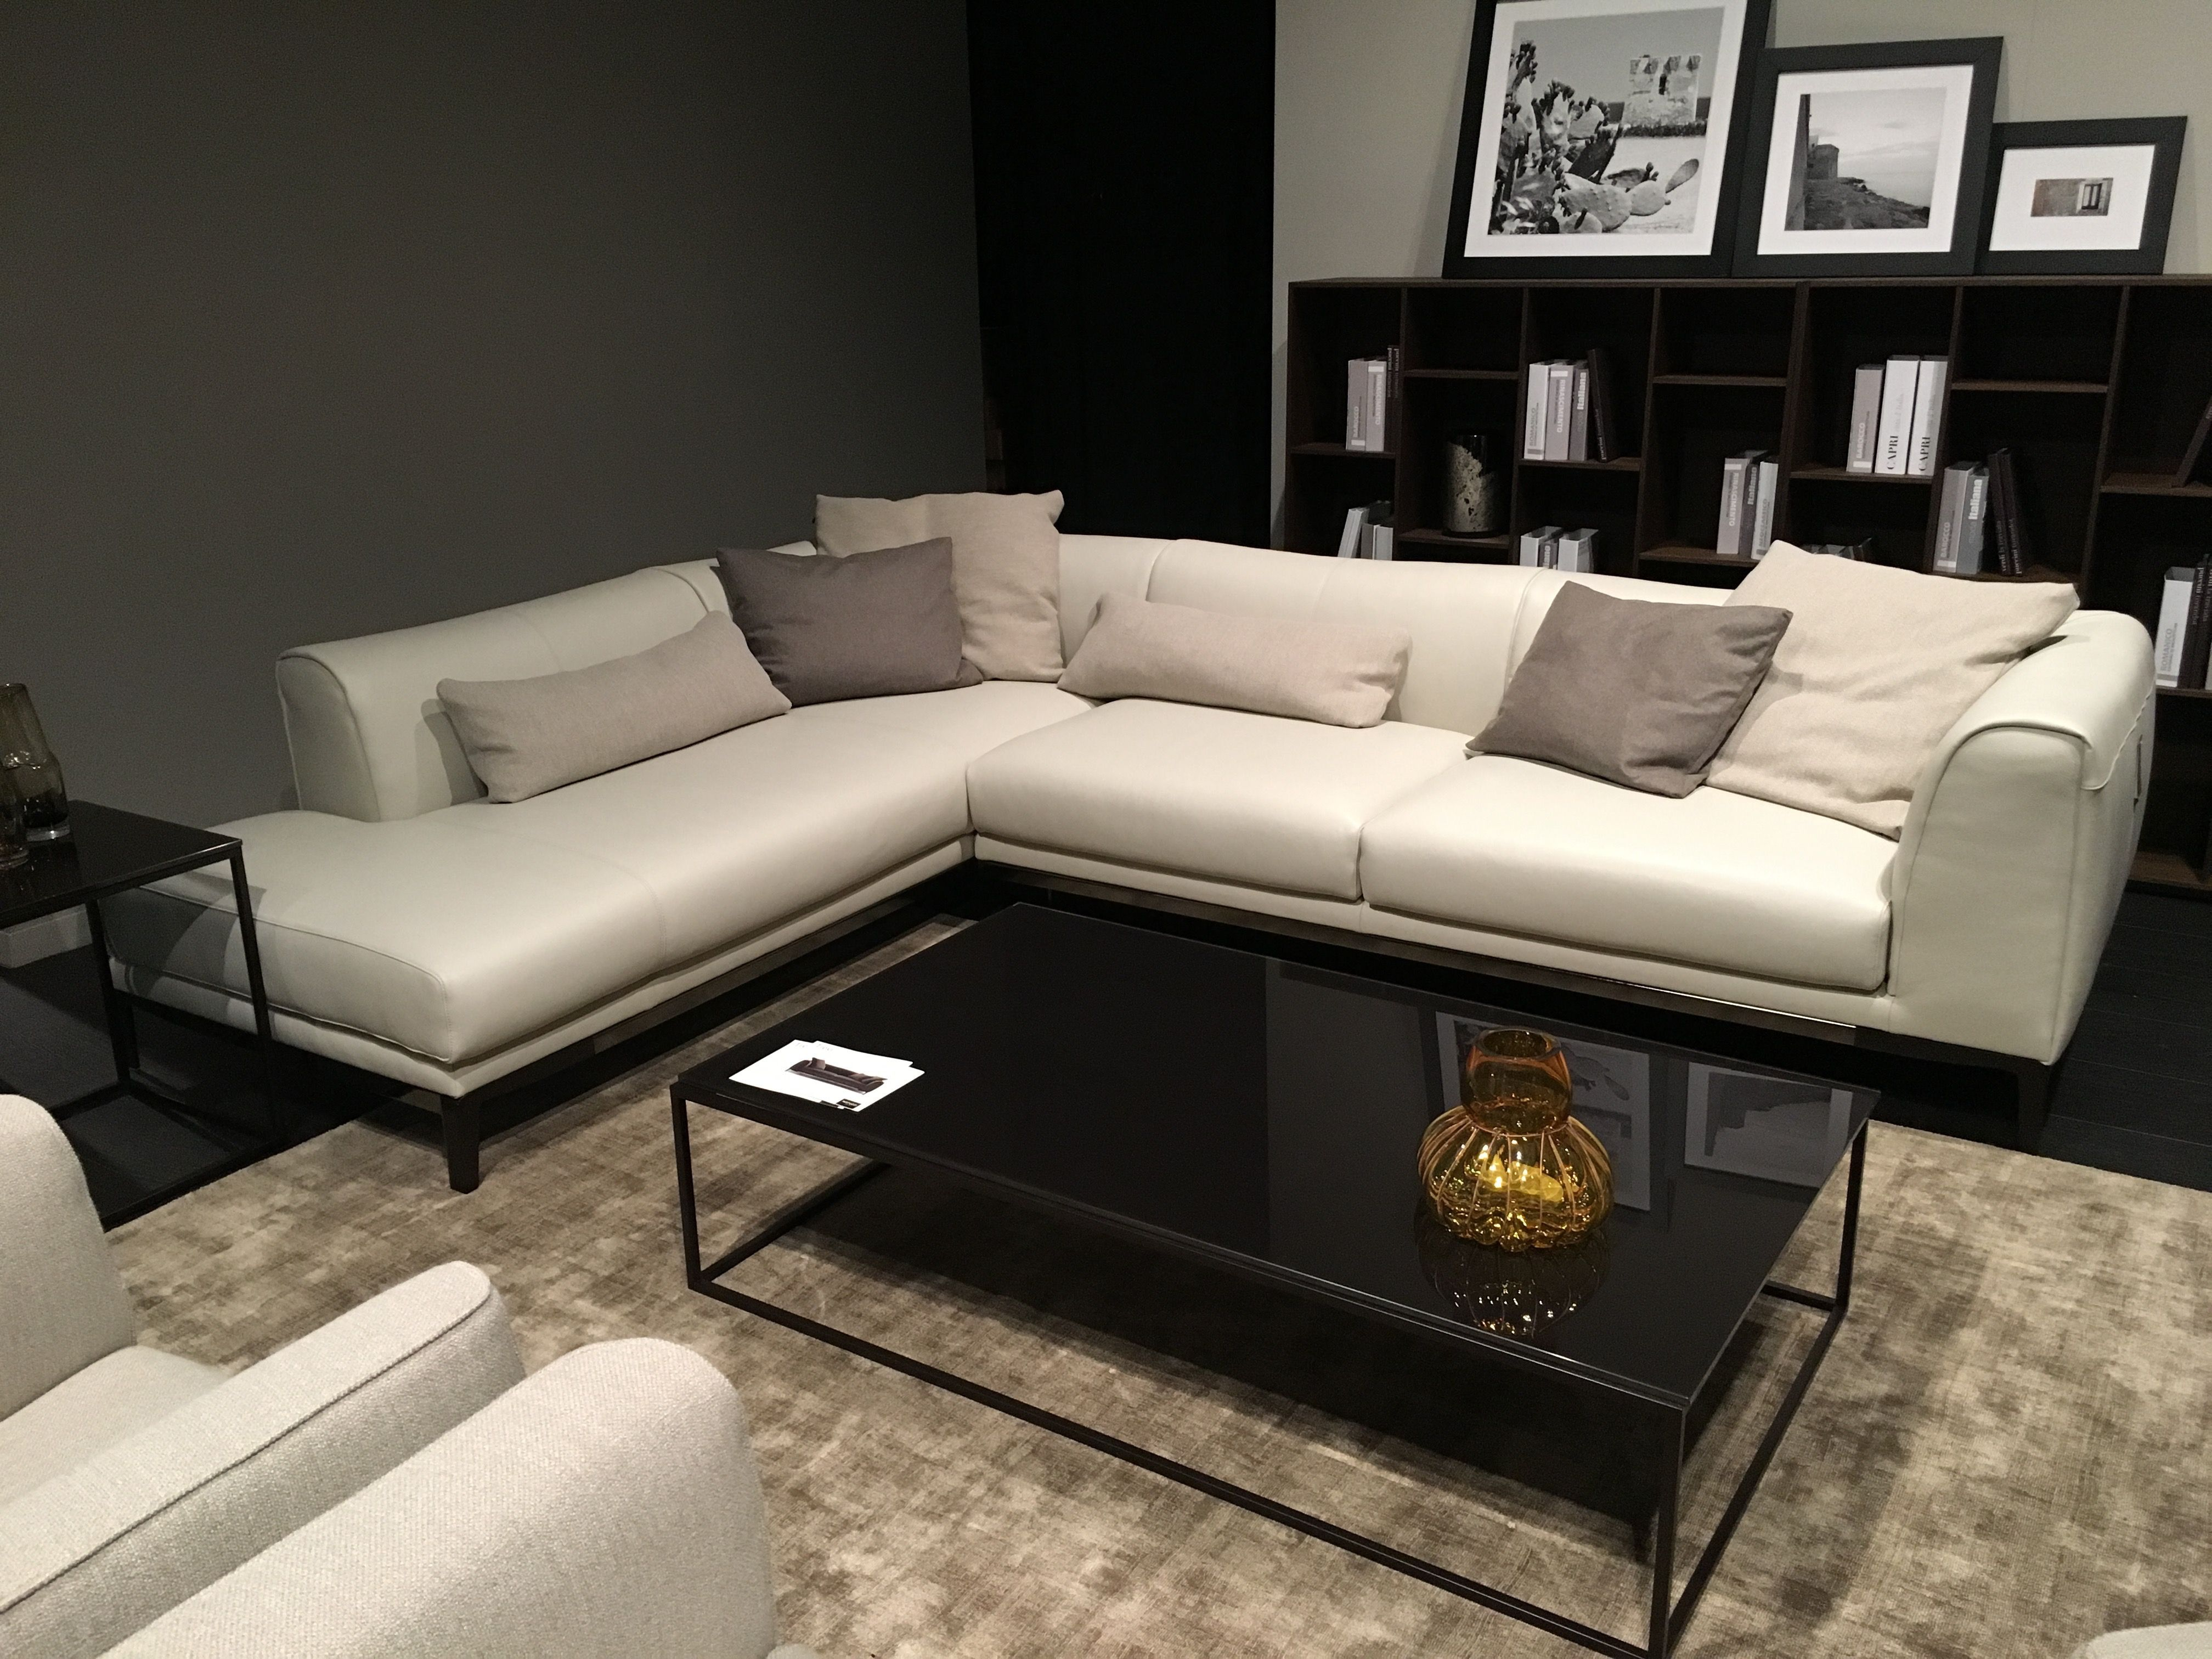 Natuzzi Editions Fiorano Sofa with Flare Tapered Arms